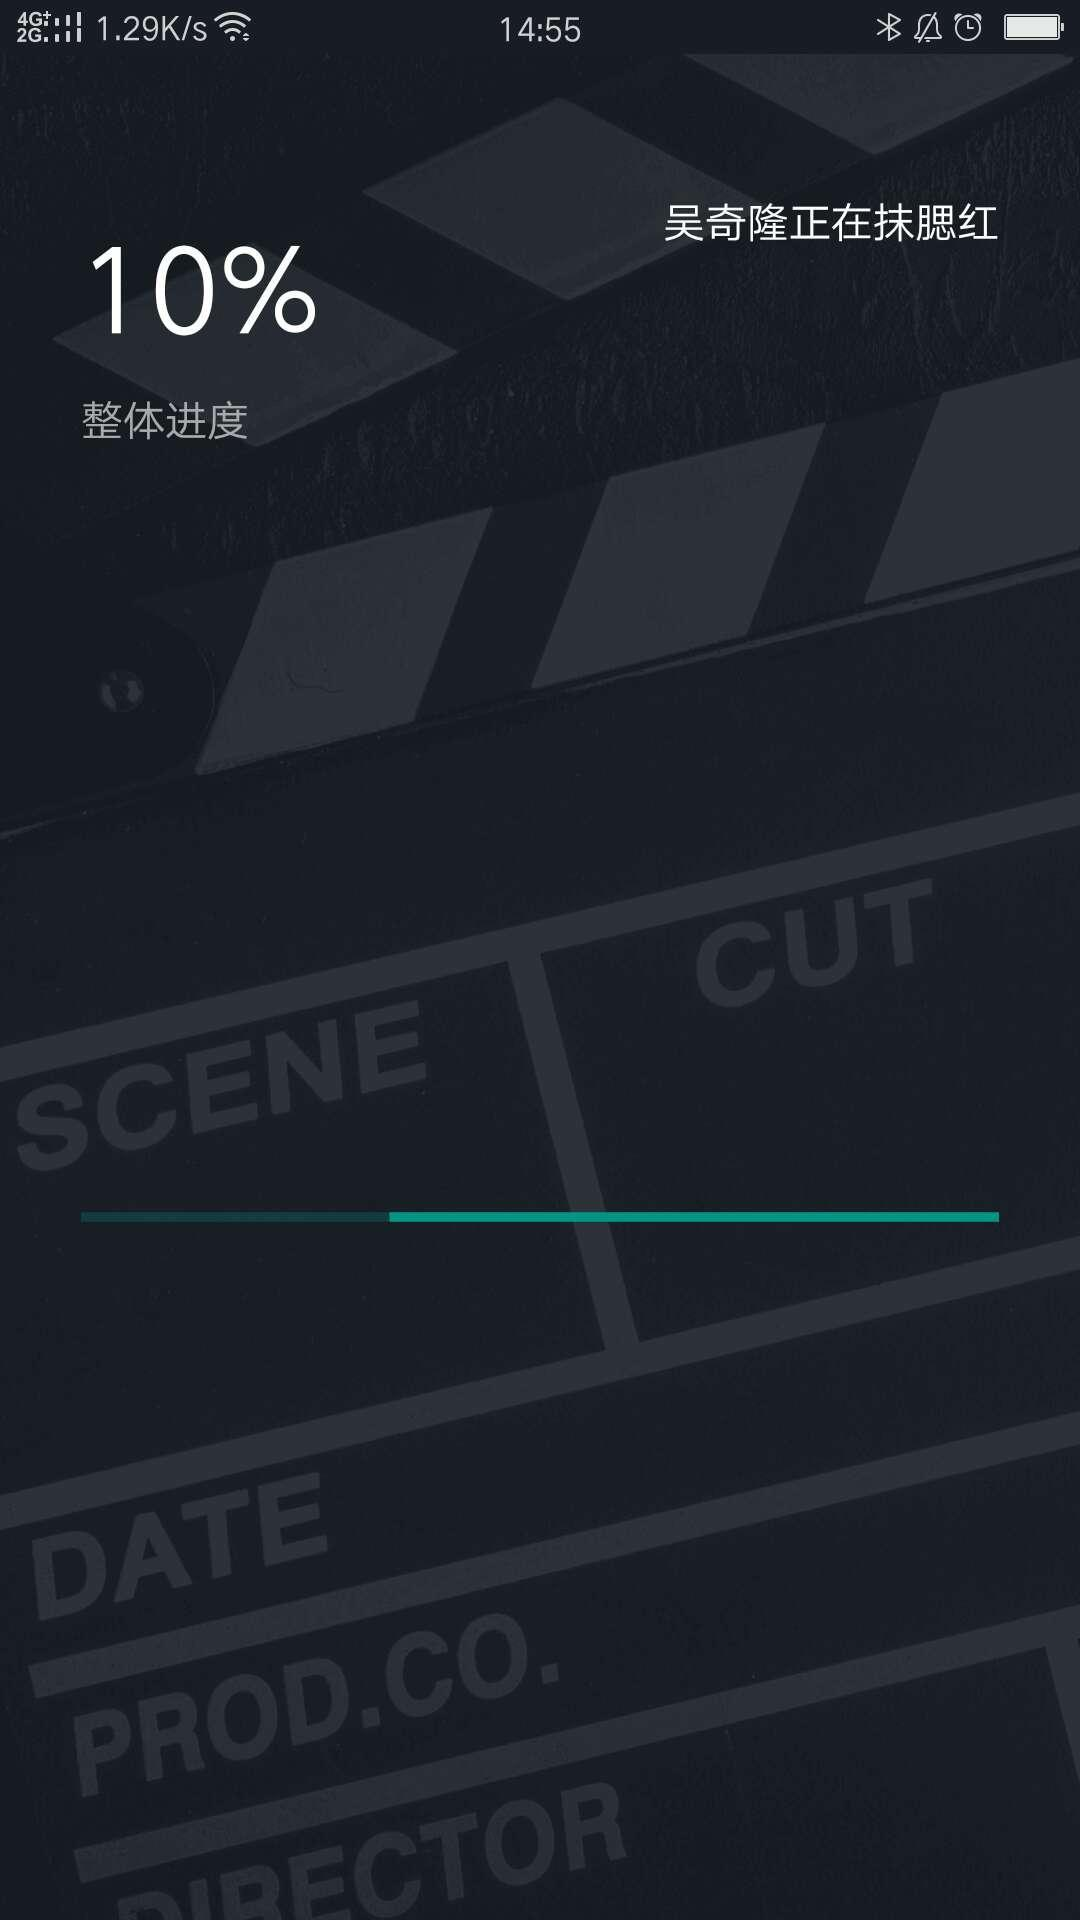 Change Face For Video for Android - APK Download